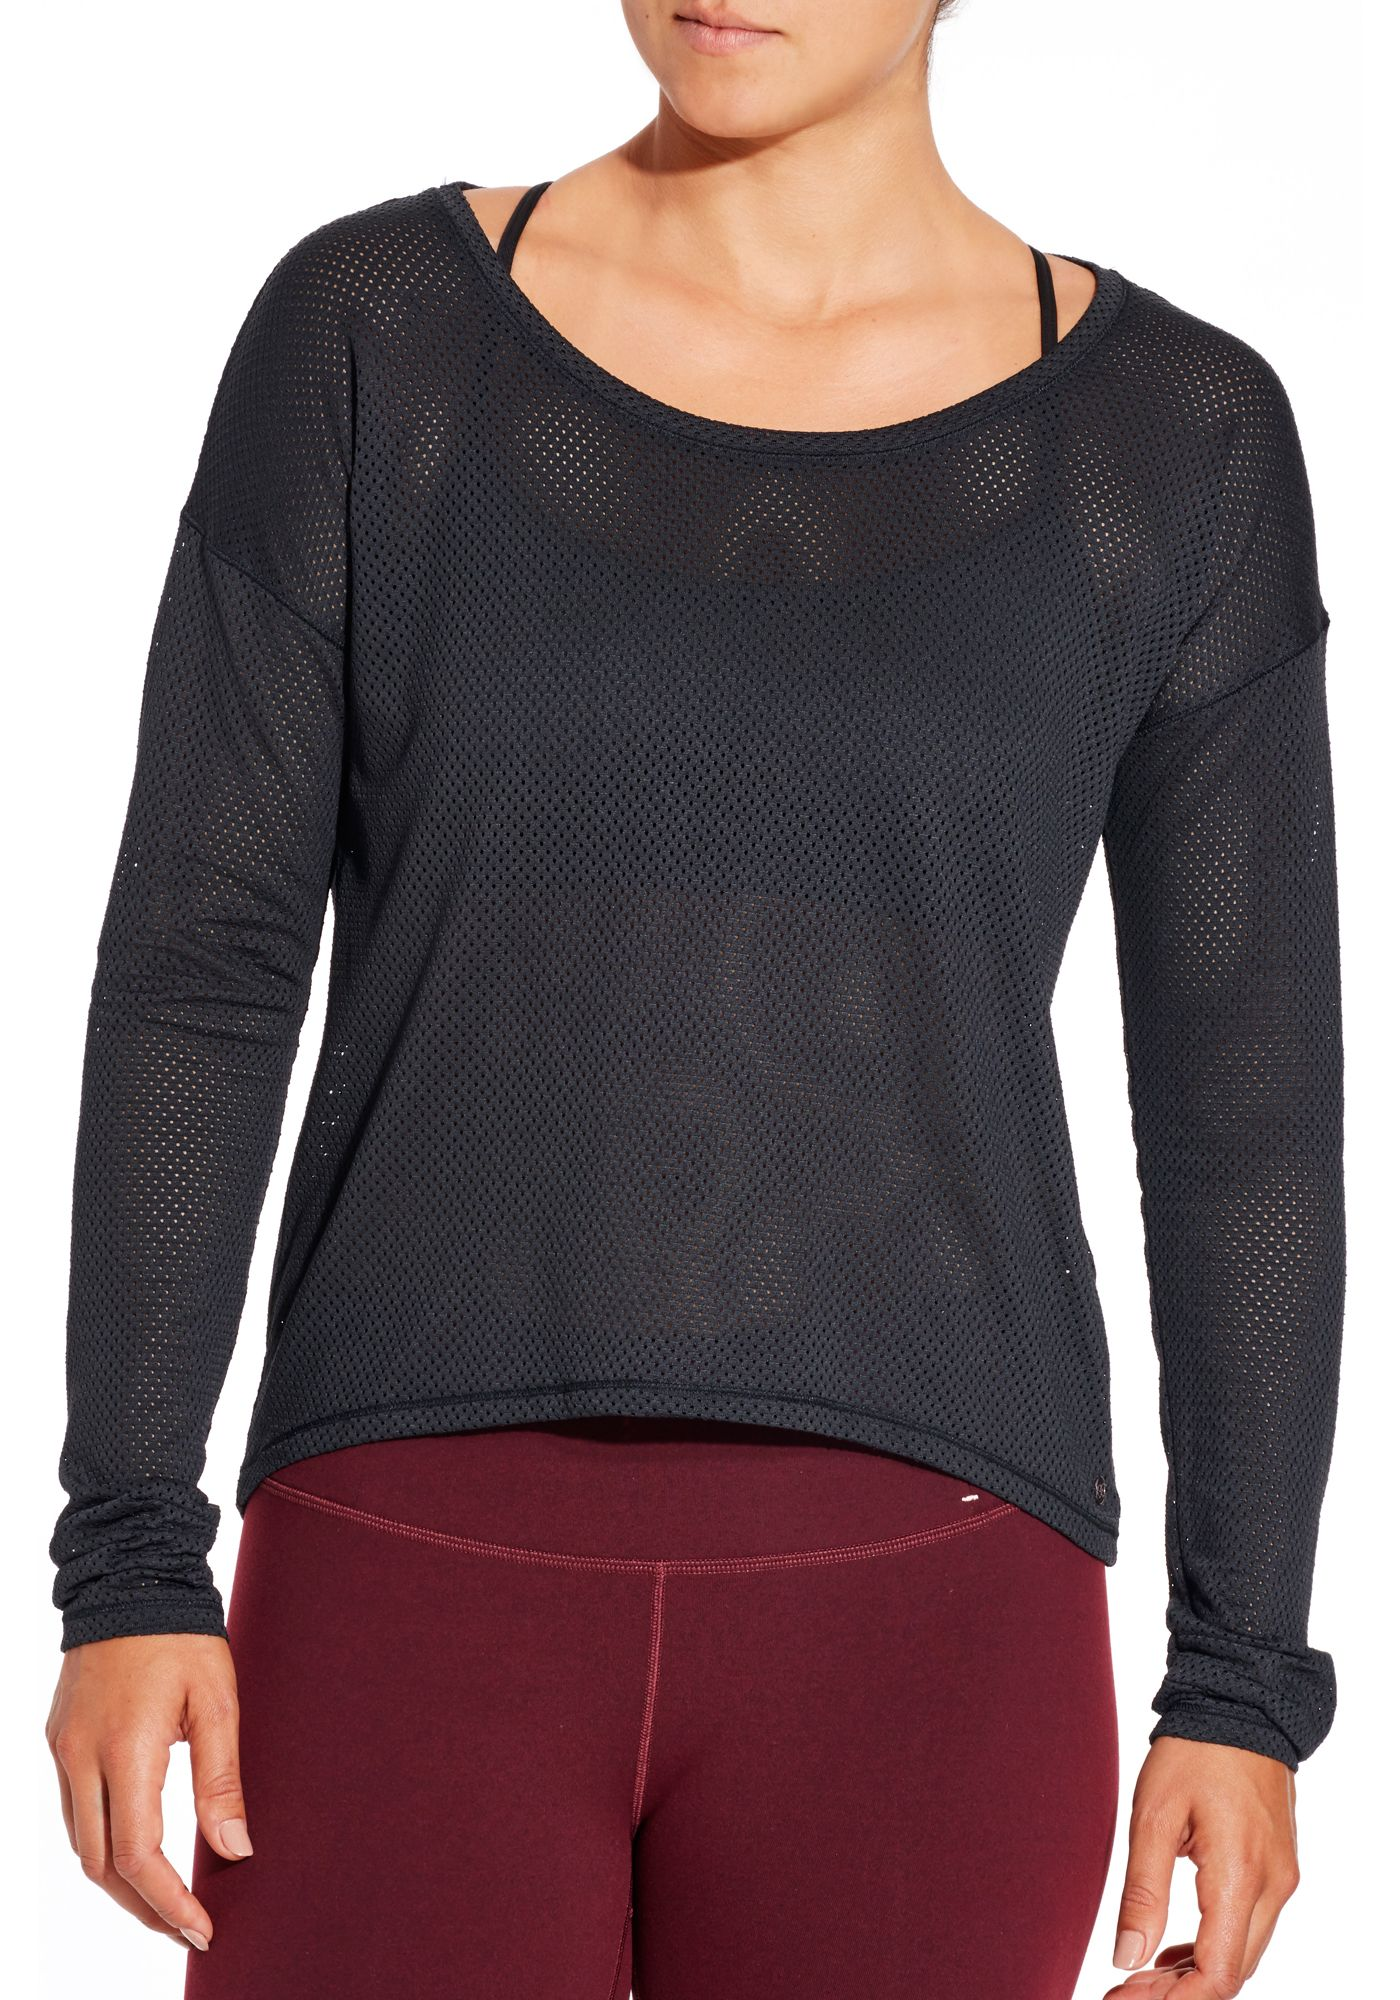 CALIA by Carrie Underwood Women's Mesh Long Sleeve Shirt